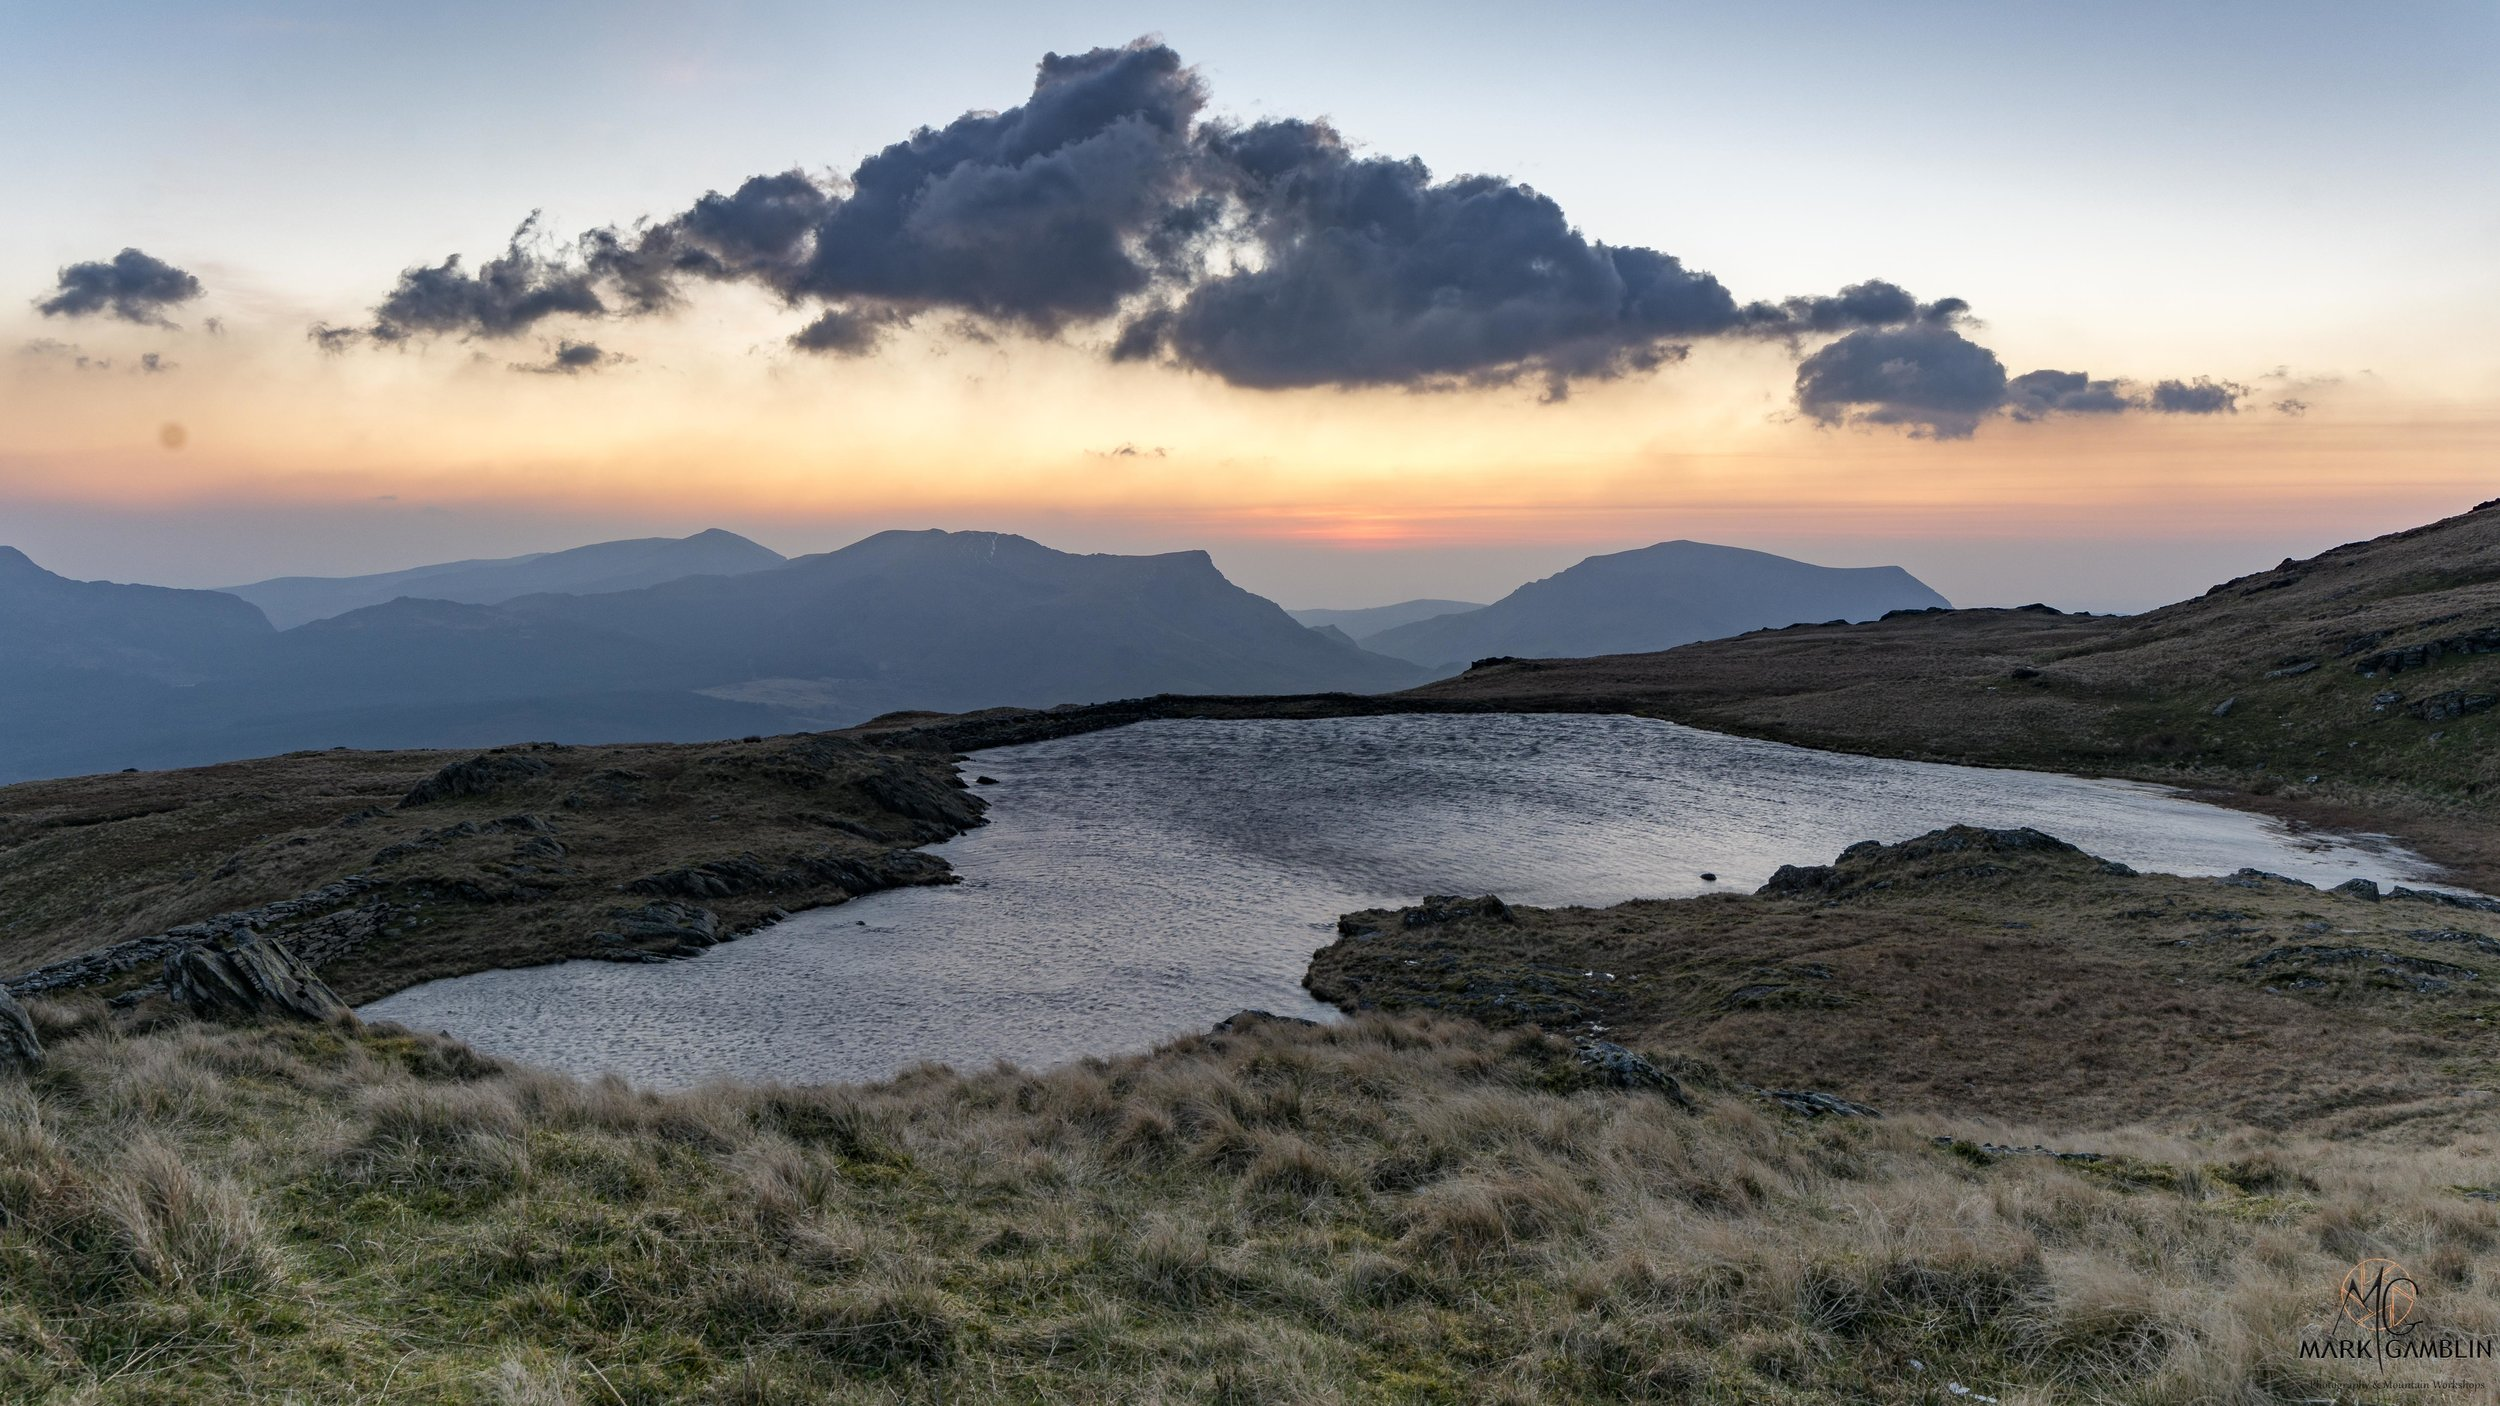 The little nameless lake at 600m just below Allt Maederyn, on the west flank of Snowdon